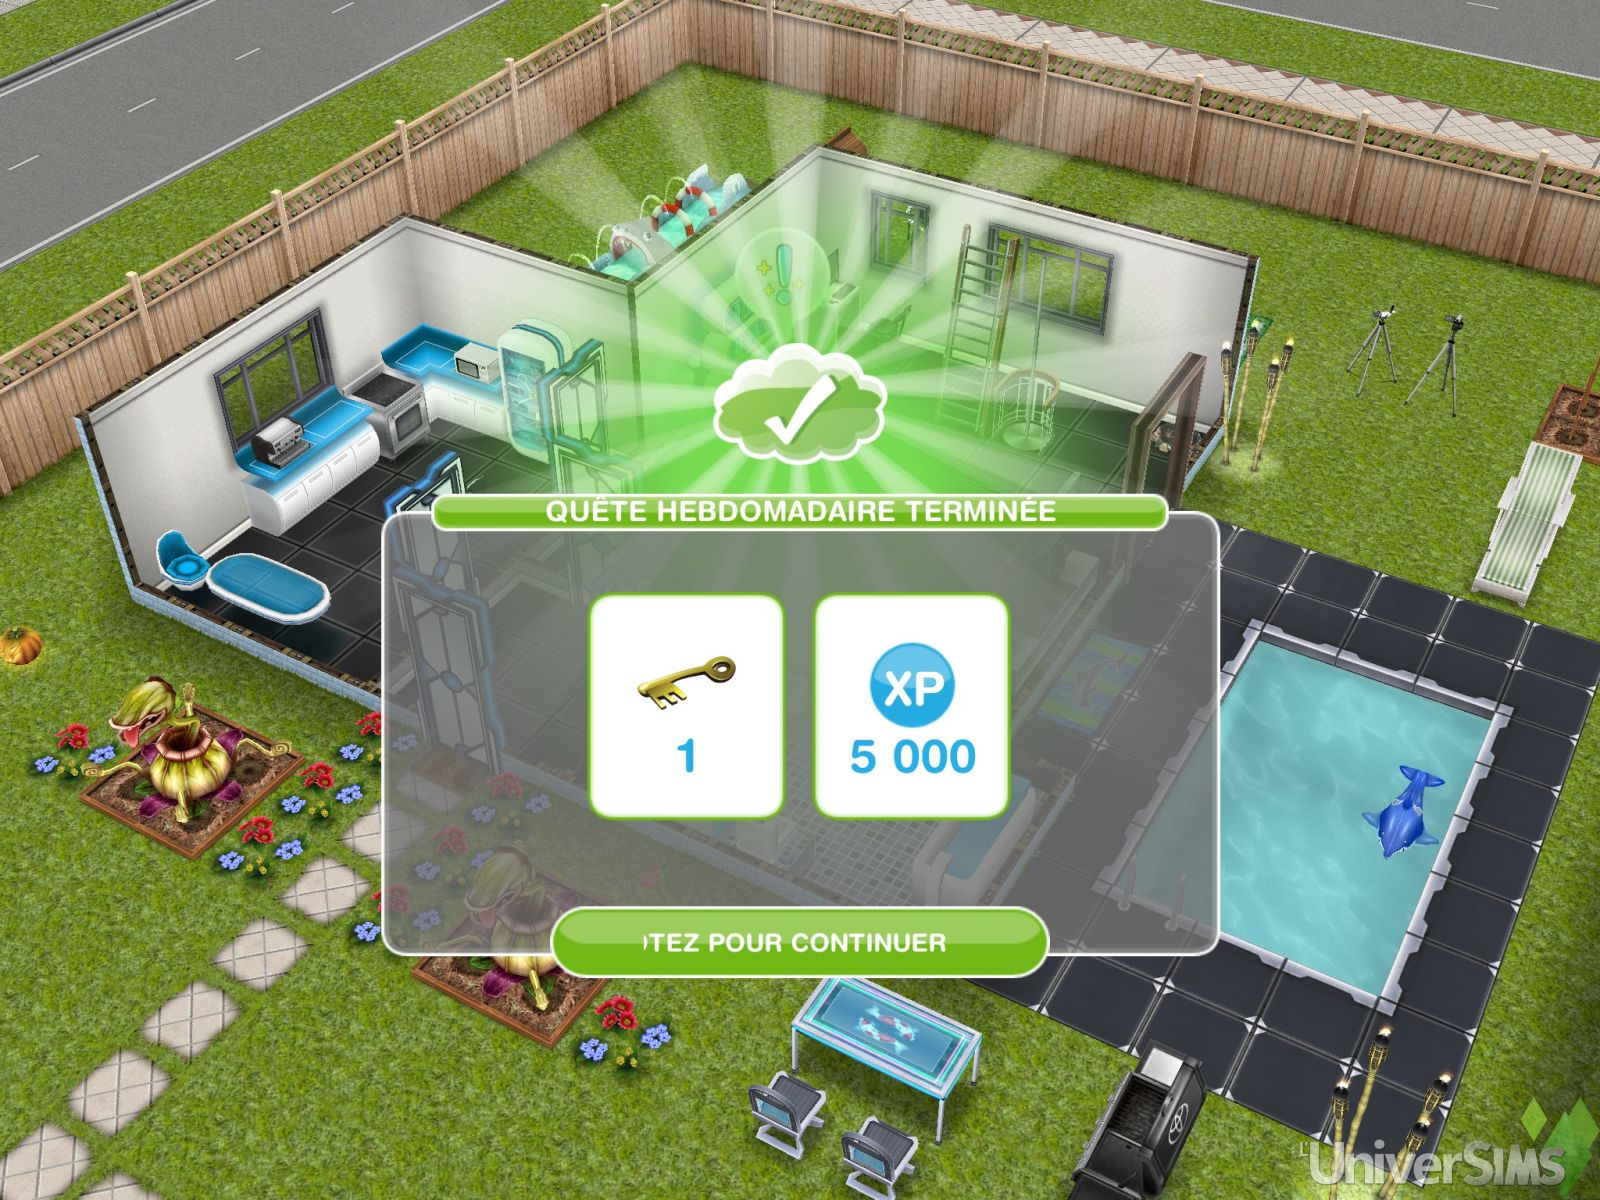 les-sims-gratuit-freeplay-quete-hebdomadaire-terminee-100%